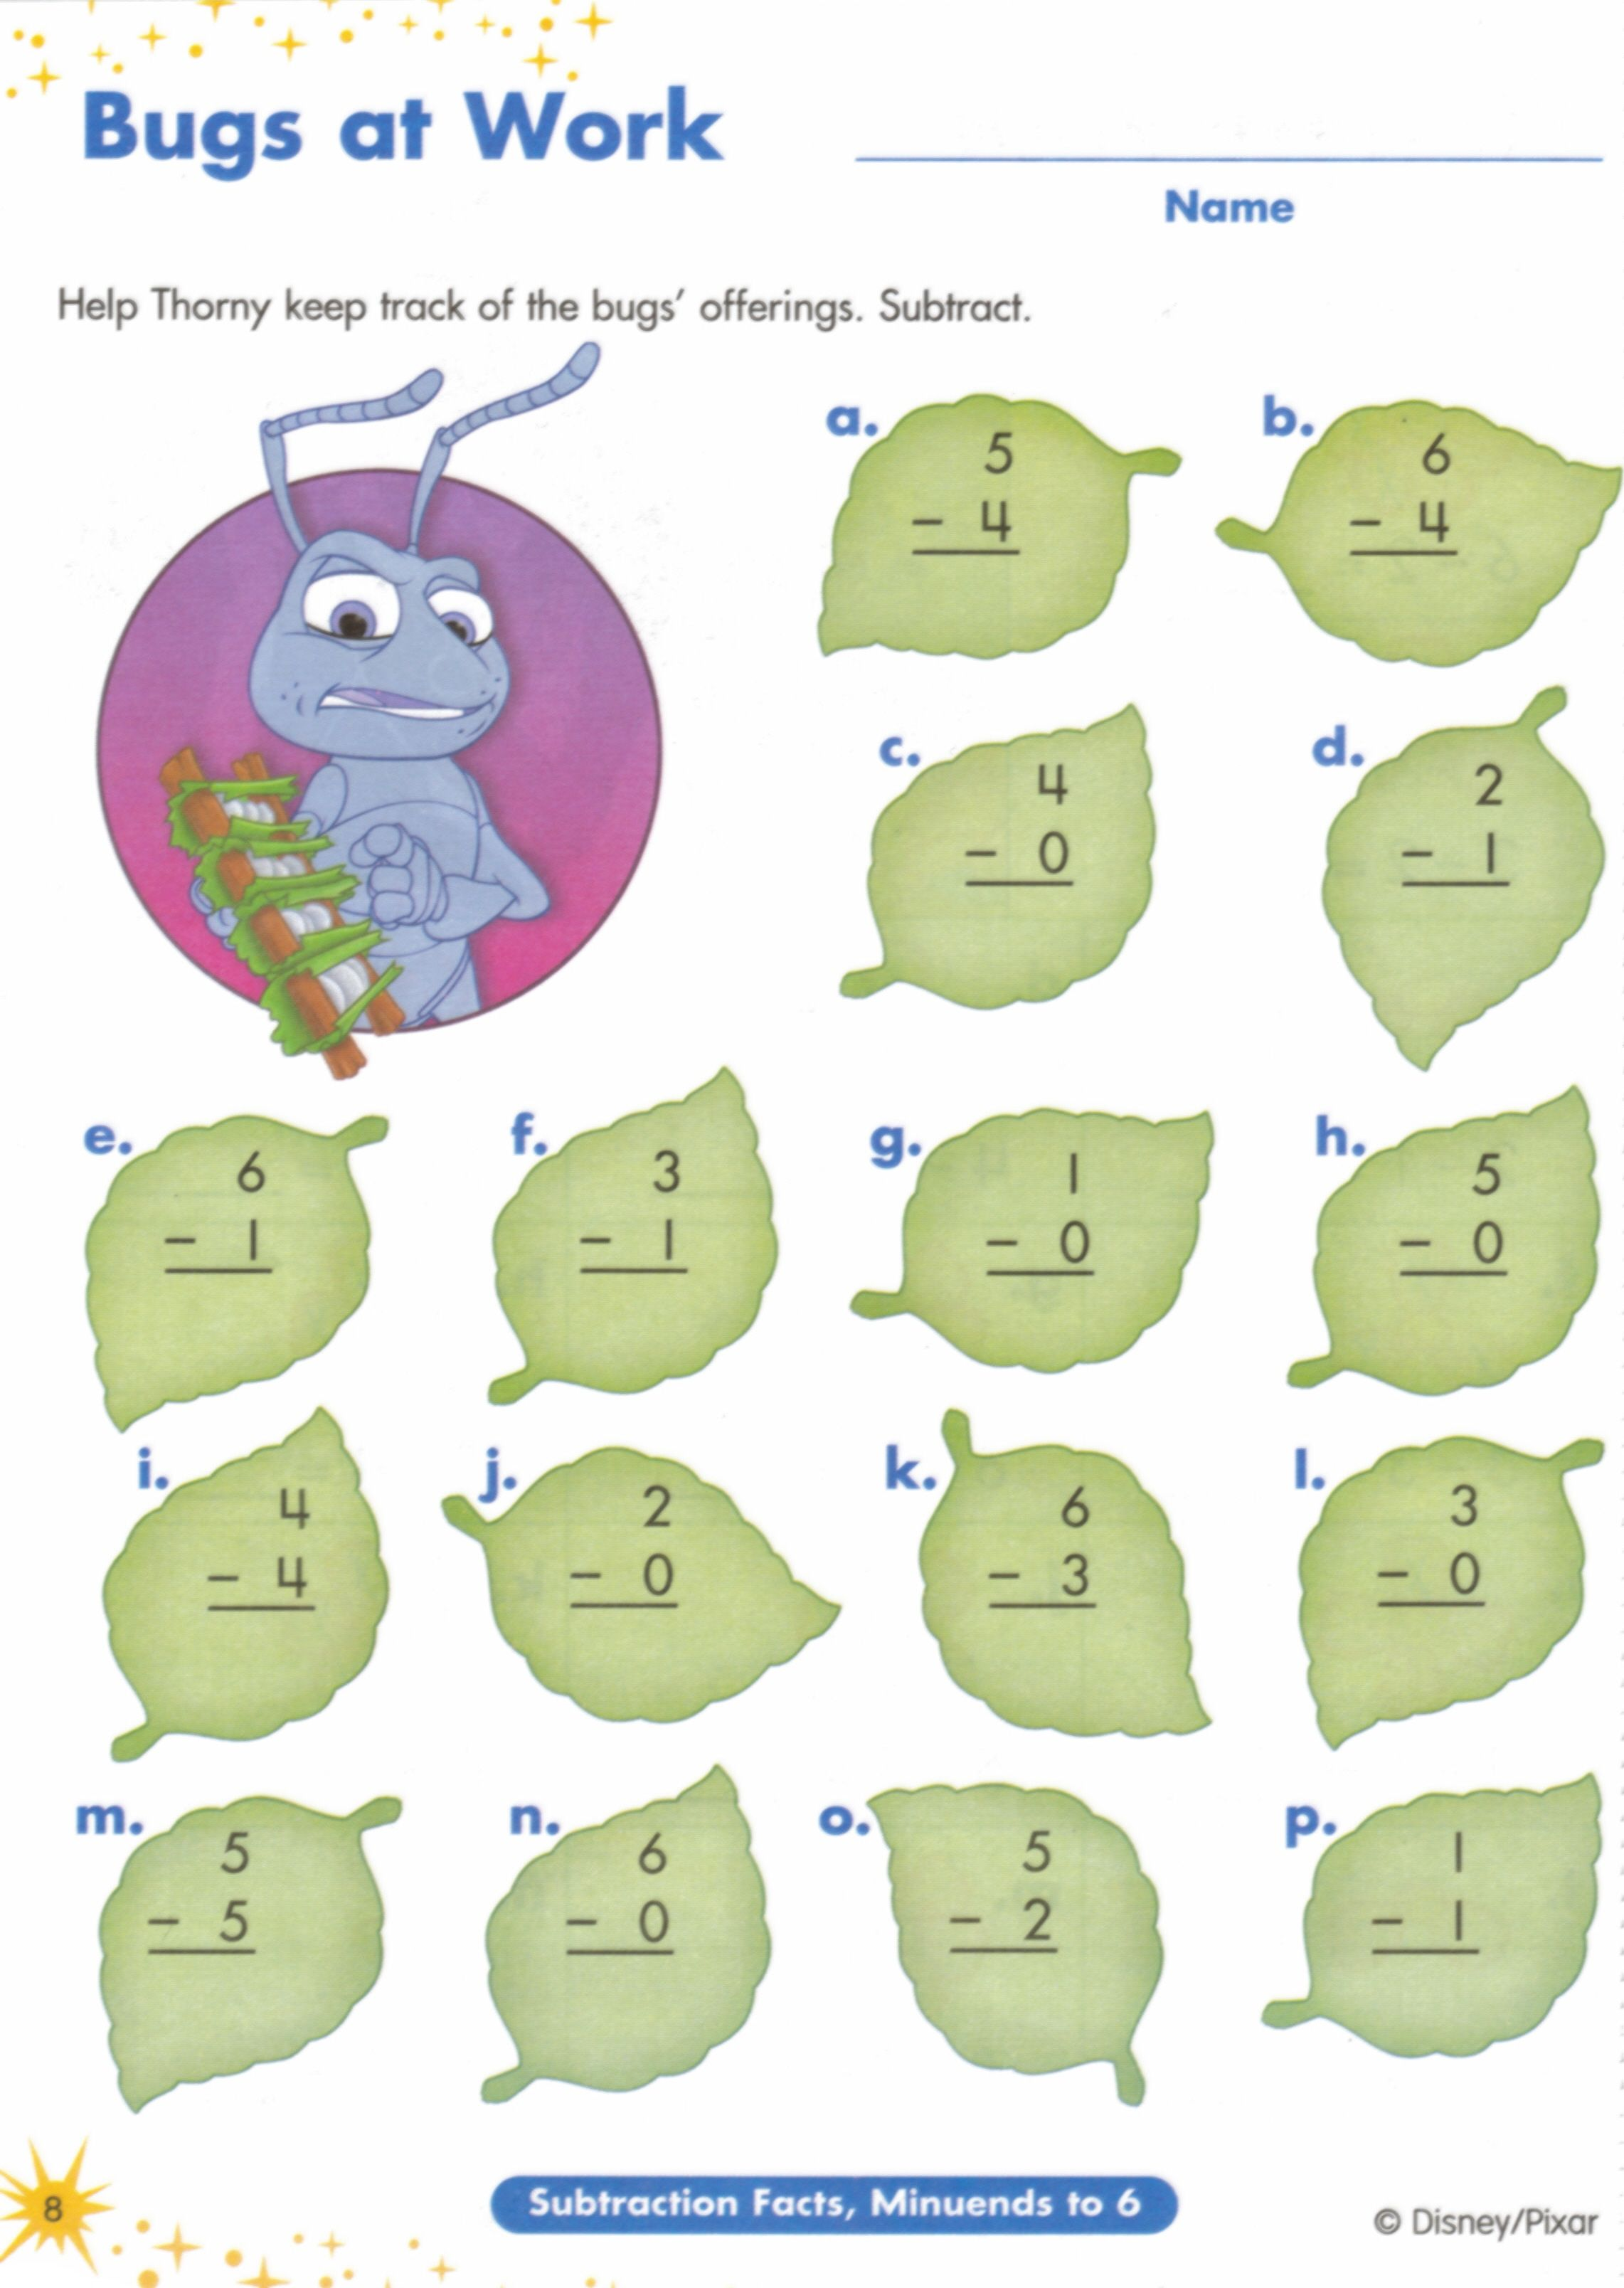 Weirdmailus  Splendid  Images About Worksheets On Pinterest  Fun Facts For Kids  With Fascinating  Images About Worksheets On Pinterest  Fun Facts For Kids Earth Day Worksheets And Jungles With Delightful Addition Doubles Worksheets Also Addition On A Number Line Worksheet In Addition Homograph Worksheets For Rd Grade And Free Contraction Worksheets For Nd Grade As Well As Preposition Worksheet For Grade  Additionally Fun Noun Worksheets From Pinterestcom With Weirdmailus  Fascinating  Images About Worksheets On Pinterest  Fun Facts For Kids  With Delightful  Images About Worksheets On Pinterest  Fun Facts For Kids Earth Day Worksheets And Jungles And Splendid Addition Doubles Worksheets Also Addition On A Number Line Worksheet In Addition Homograph Worksheets For Rd Grade From Pinterestcom